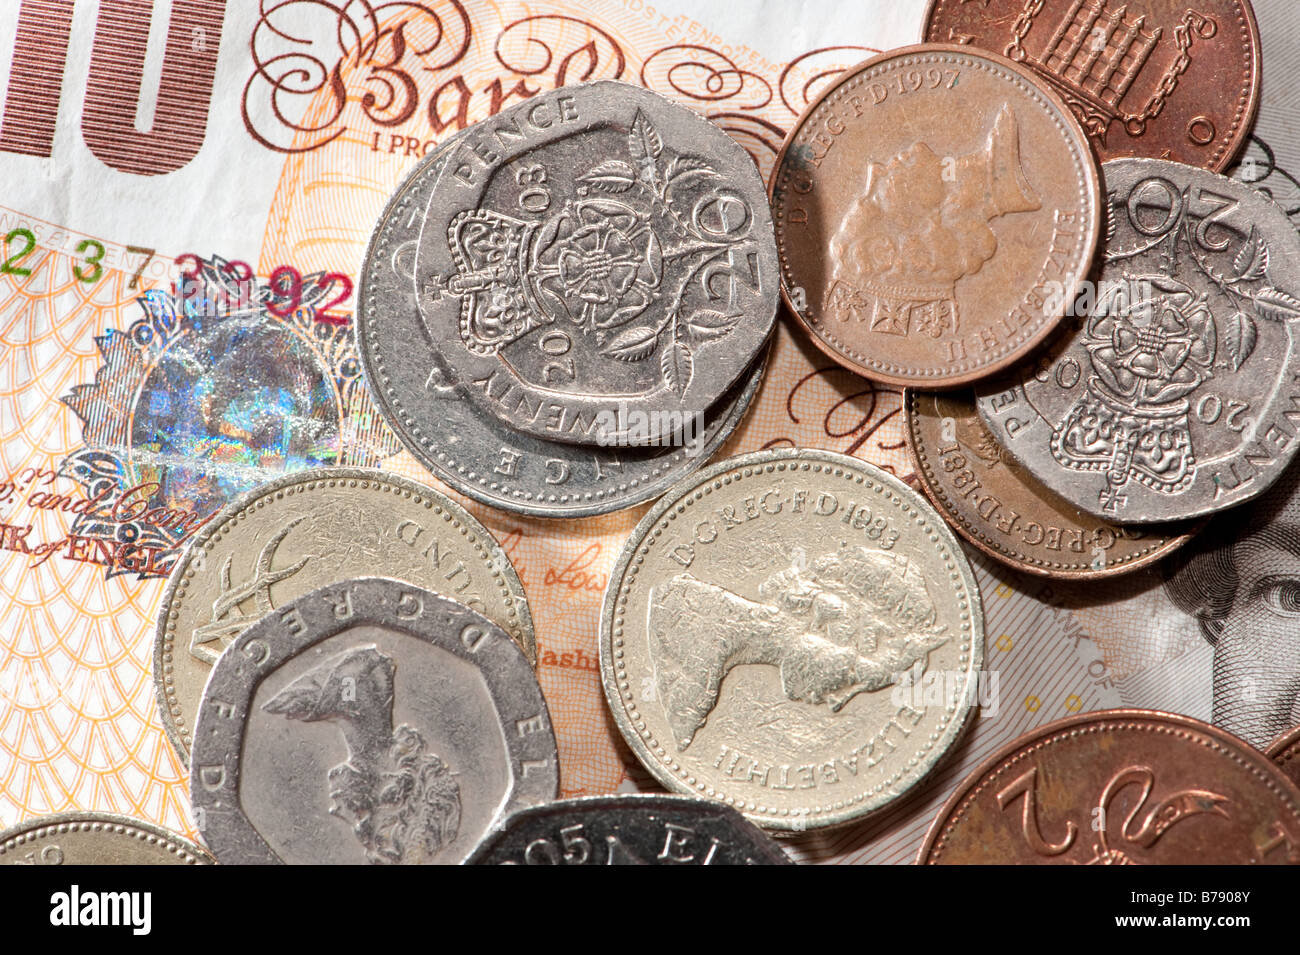 British £10 note and coins - UK sterling currency cash - Stock Image